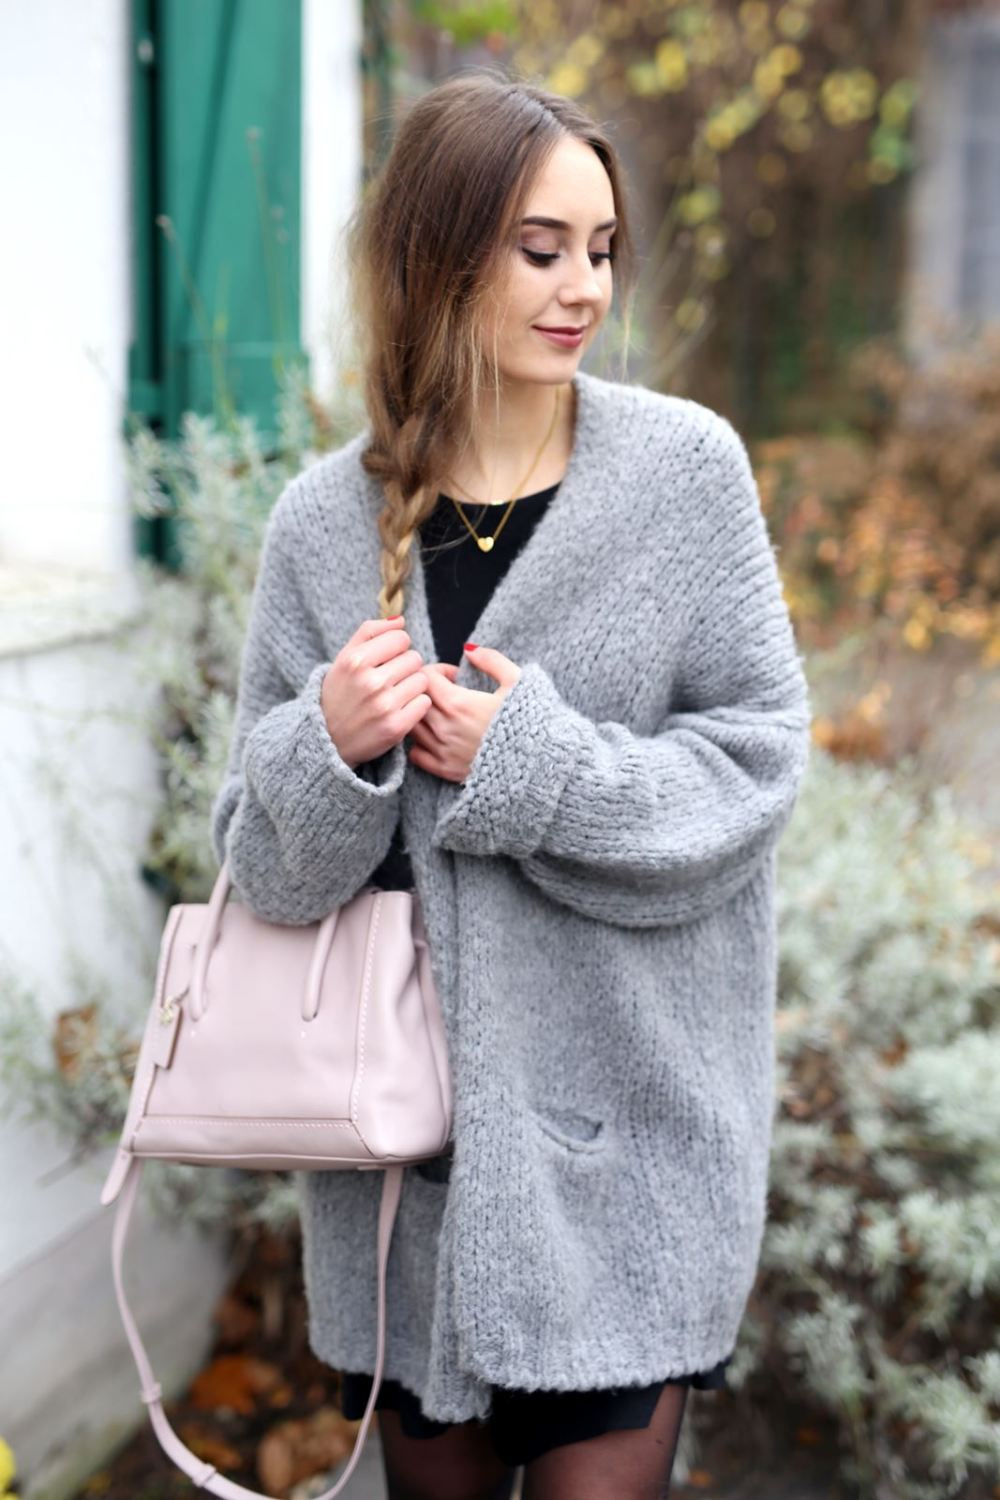 modeblog-german-fashion-blog-outfit-cardigan-kleid-8